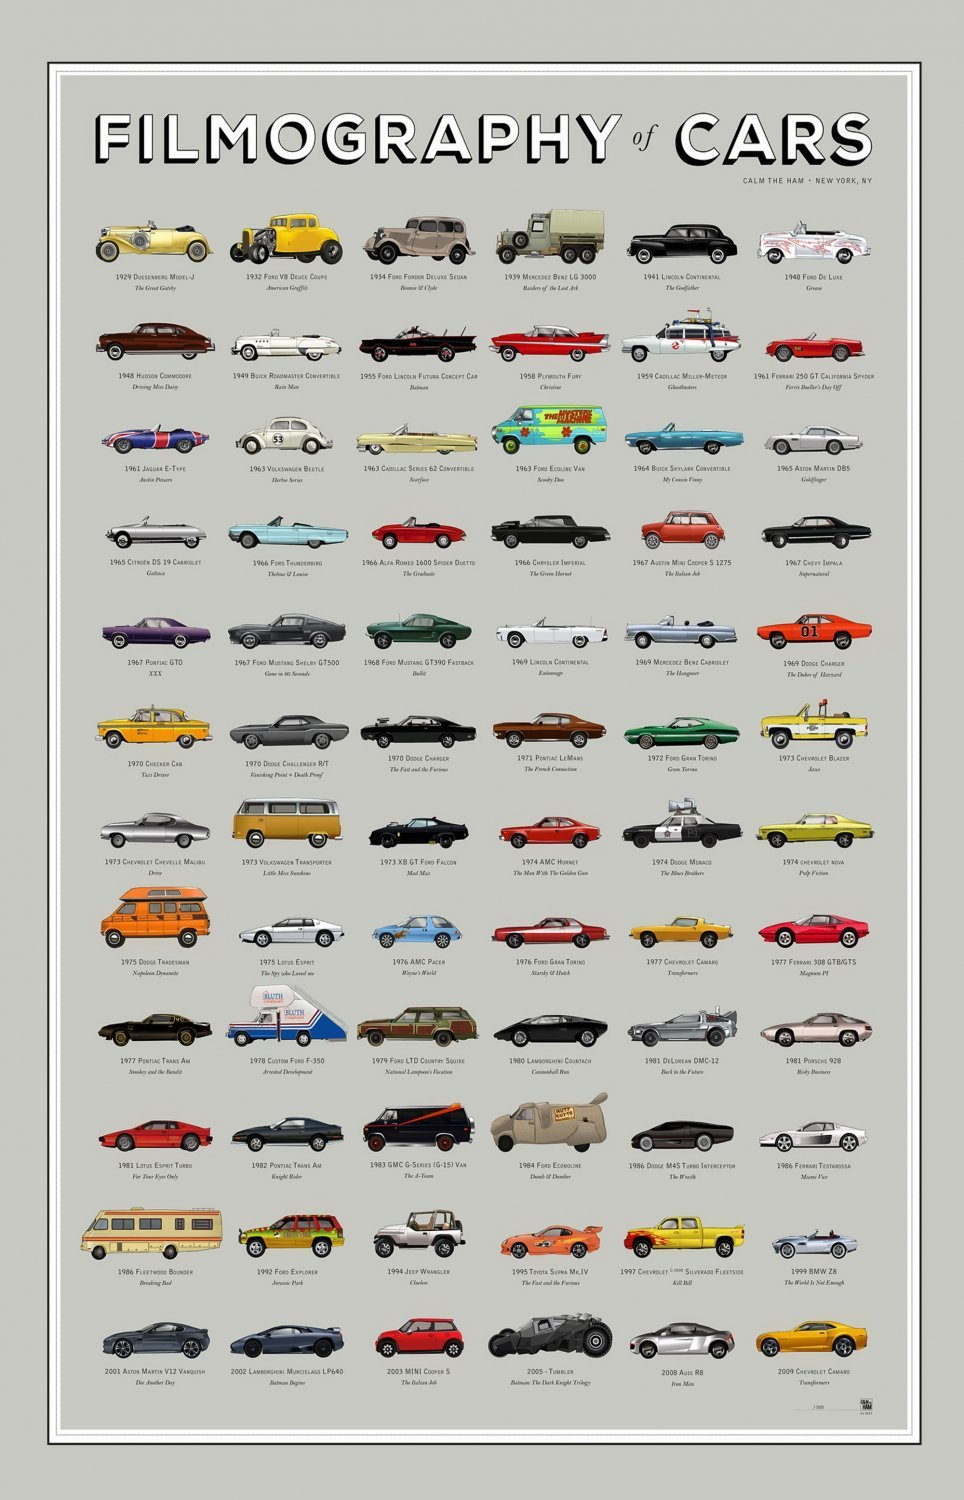 Filmography of Cars Chart  18x28 inches Canvas Print